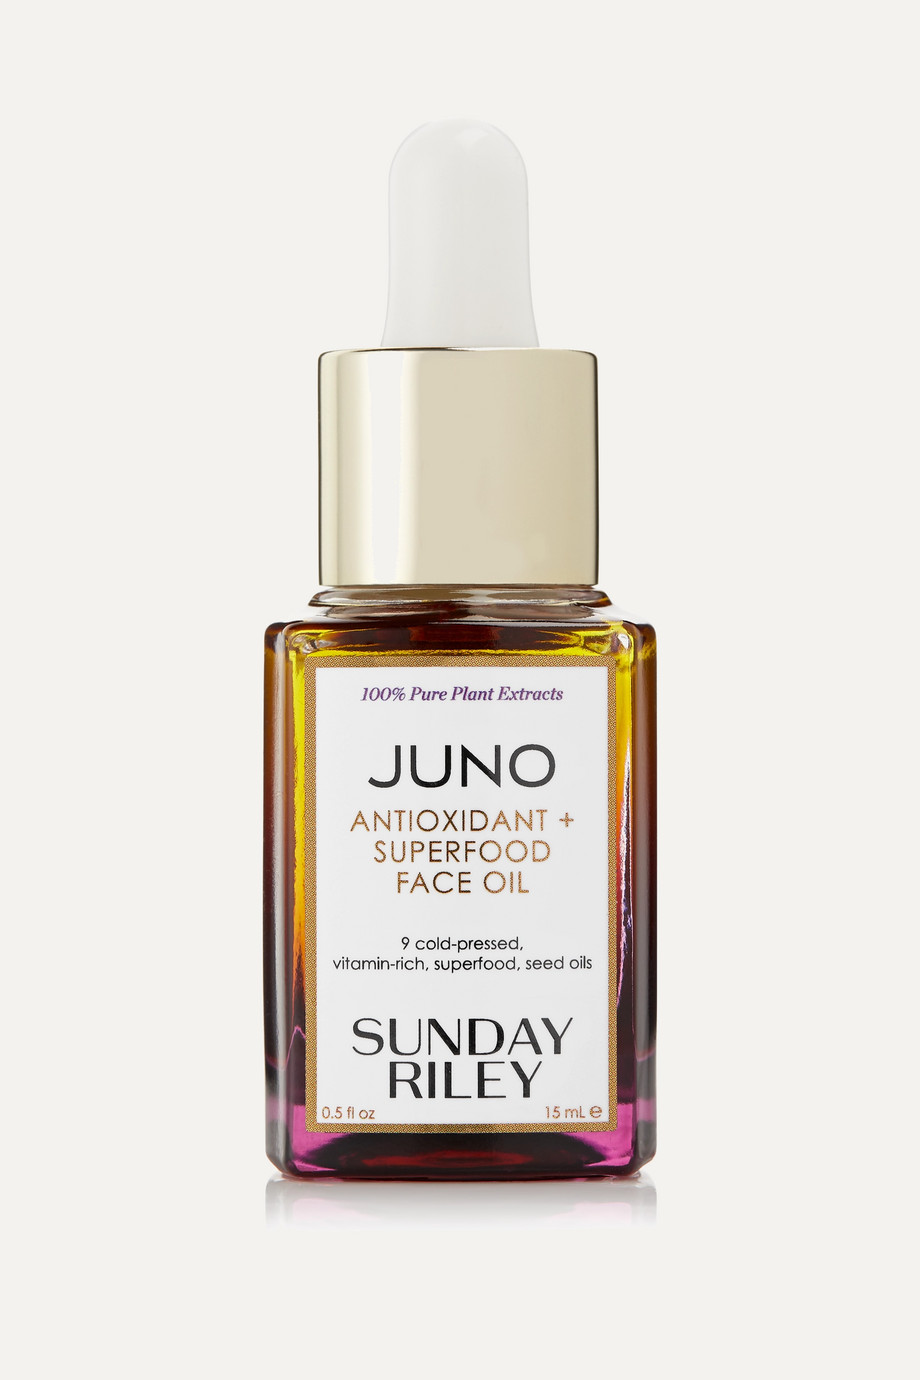 Sunday Riley Juno Antioxidant + Superfood Face Oil, 15ml